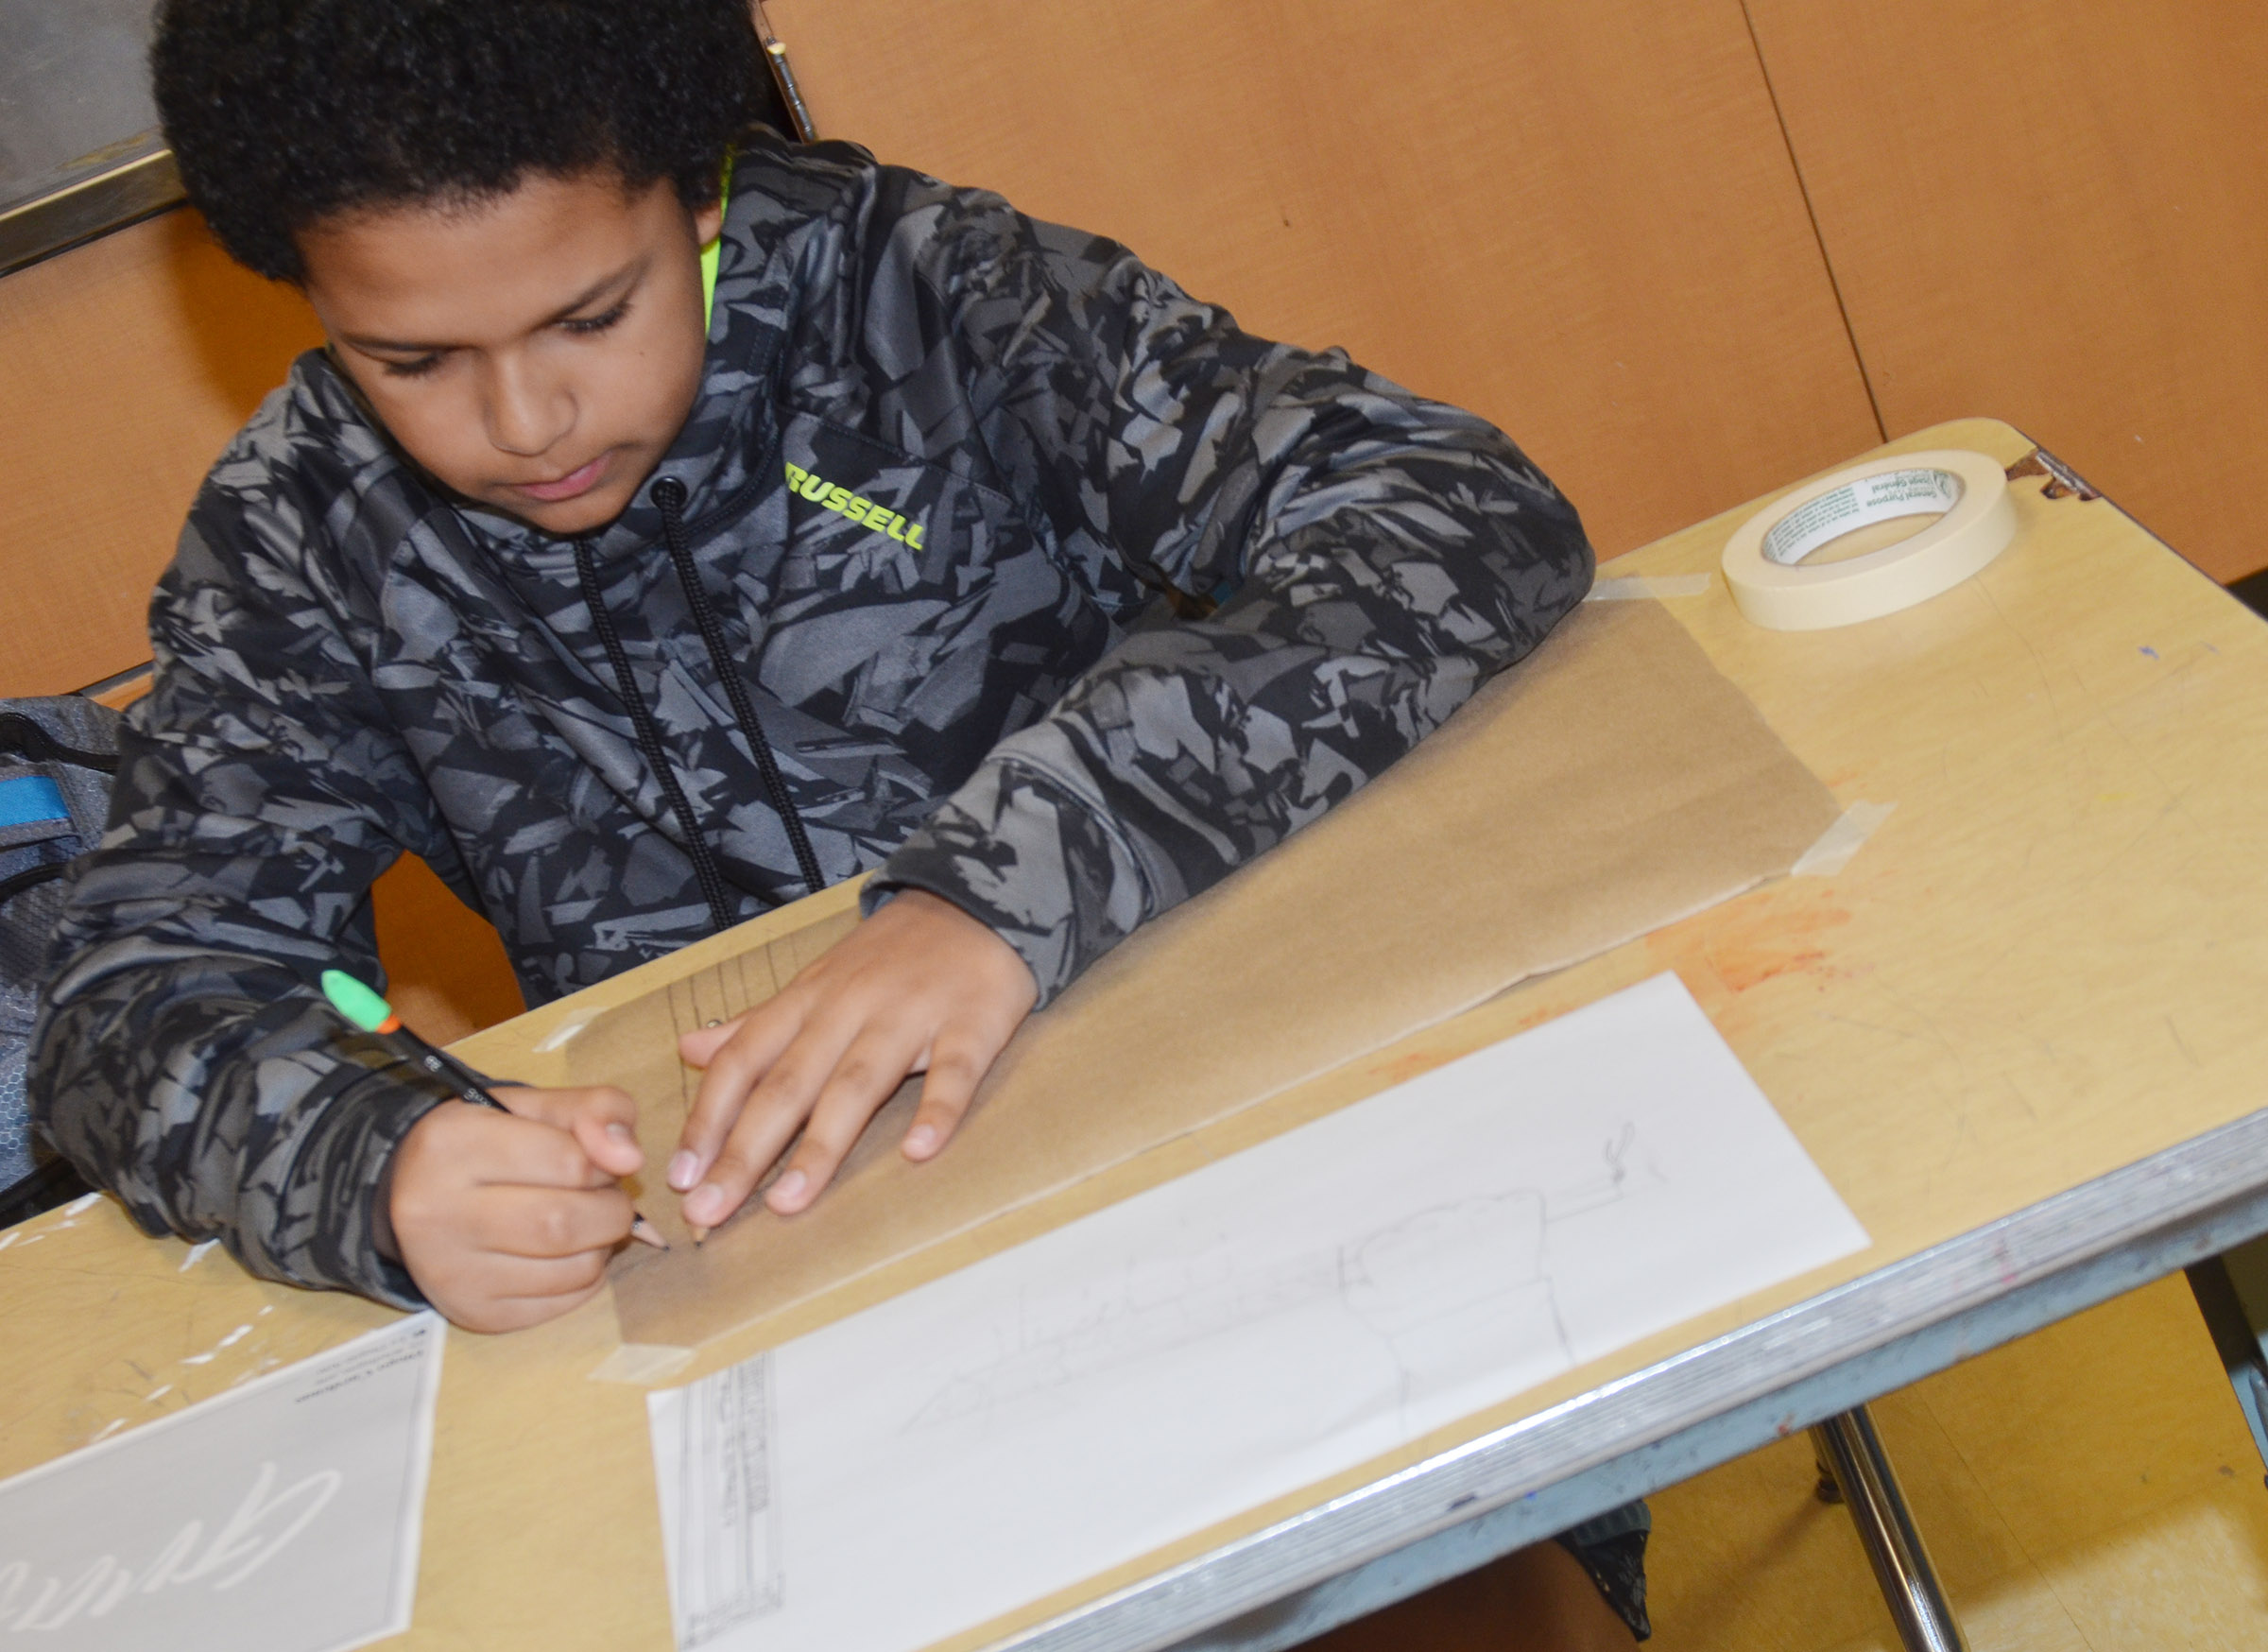 Campbellsville Middle School eighth-grader Tezon Mitchell draws his graffiti-style art.